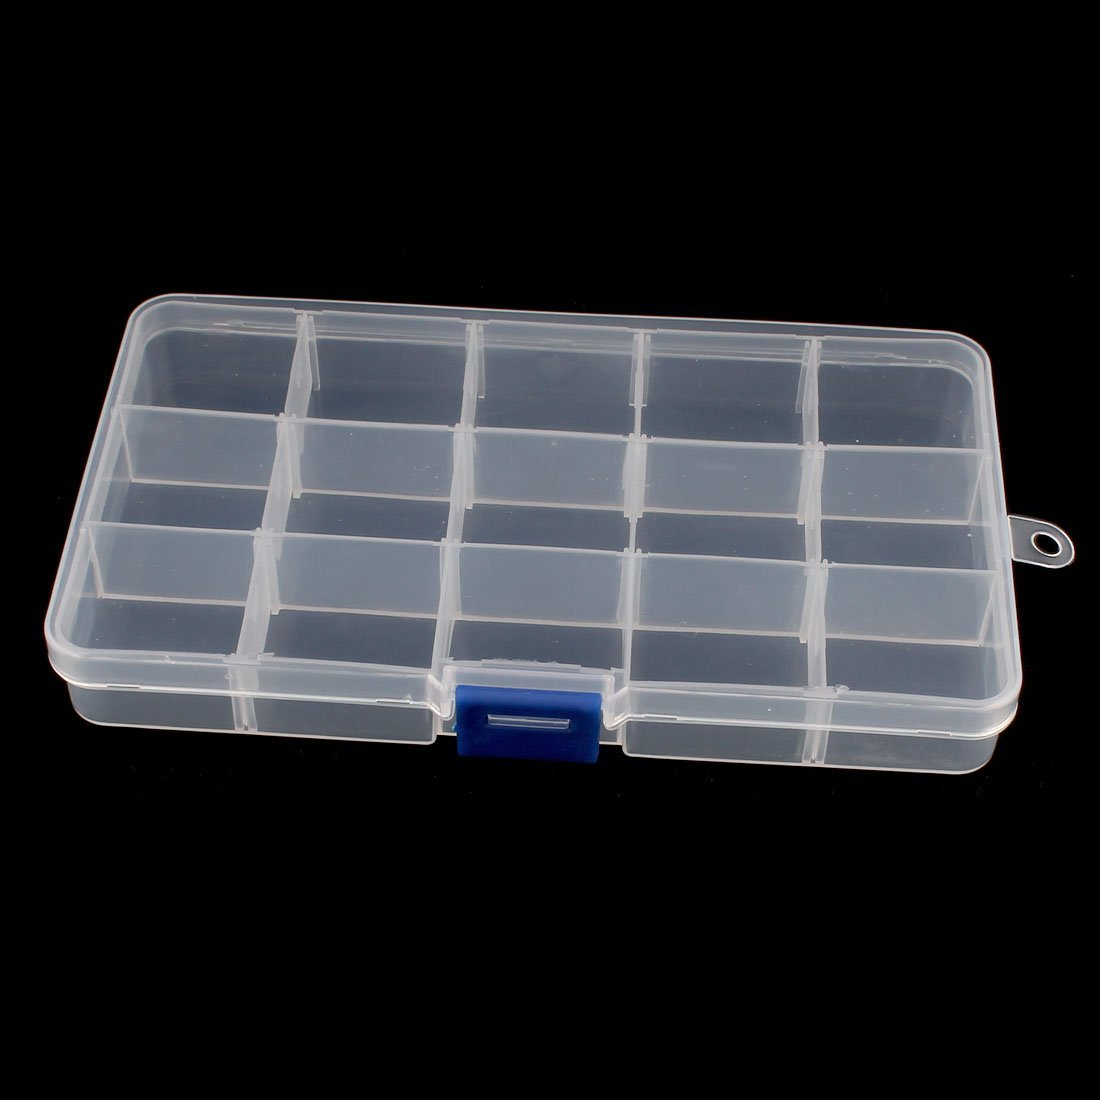 Aexit Electronic Components Tool Organizers 15 Slots Detachable Plastic Storage Tool Boxes Cases Boxes